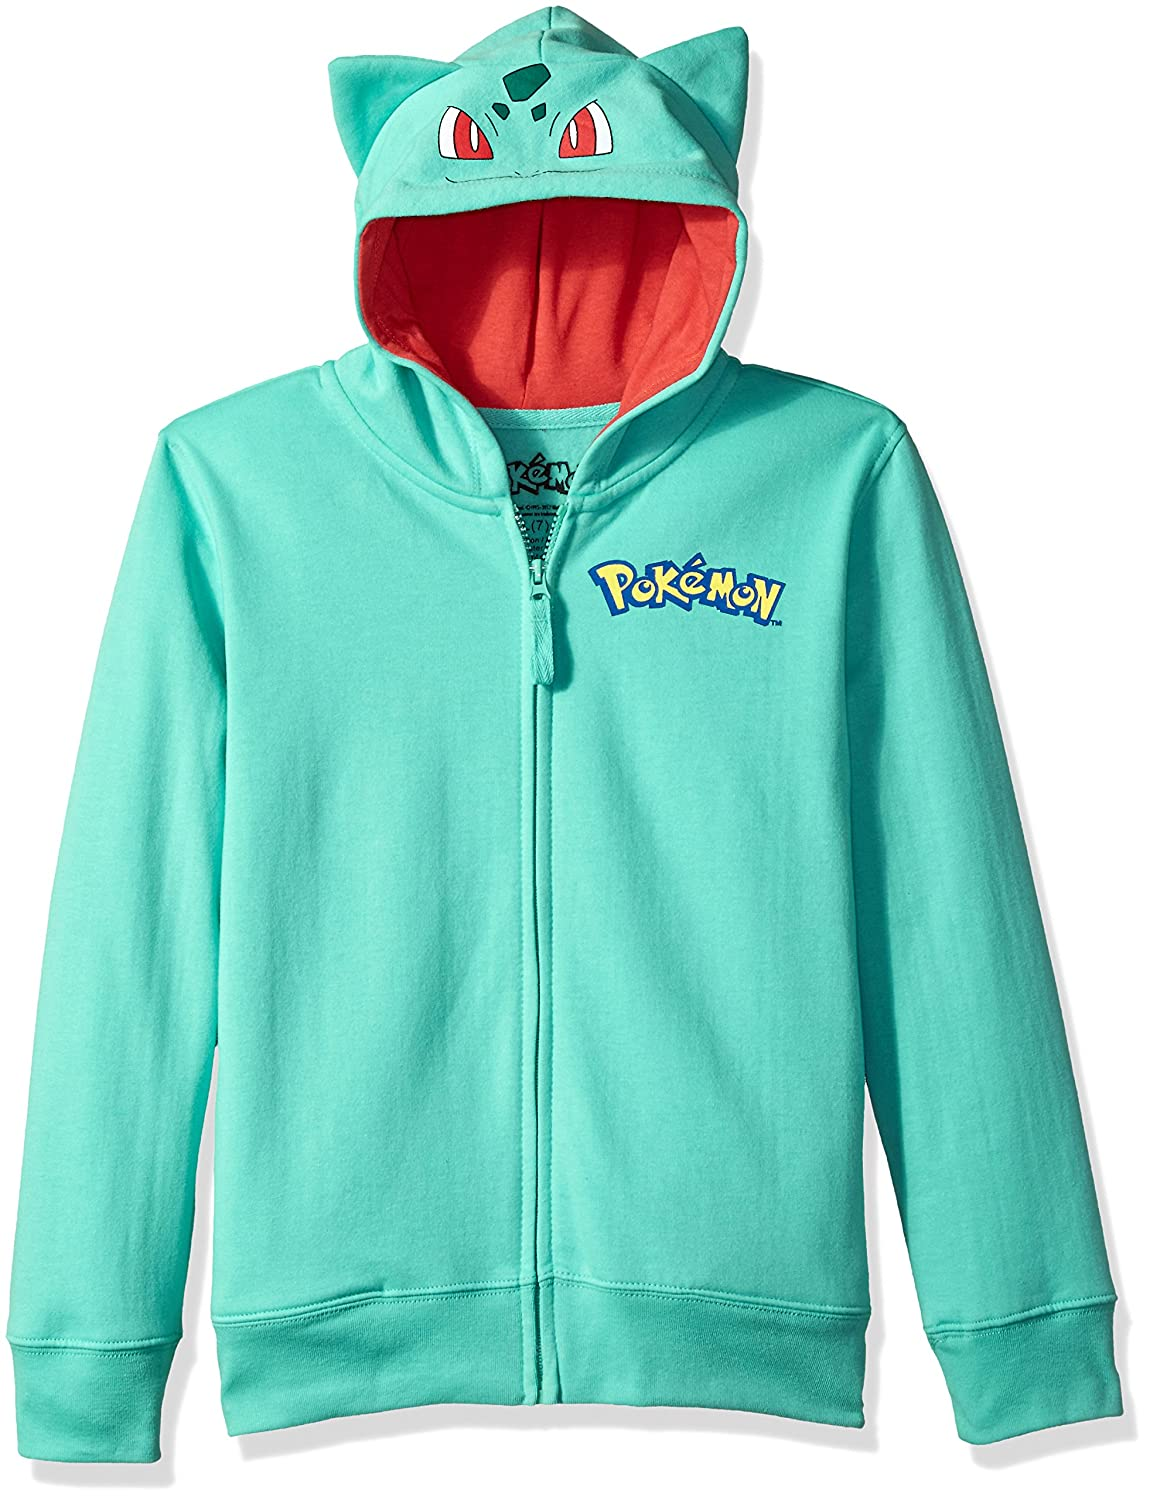 Pokemon boys Bulbasaur Costume Hoodie Freeze Children' s Apparel MUSB785-5B05-5B06